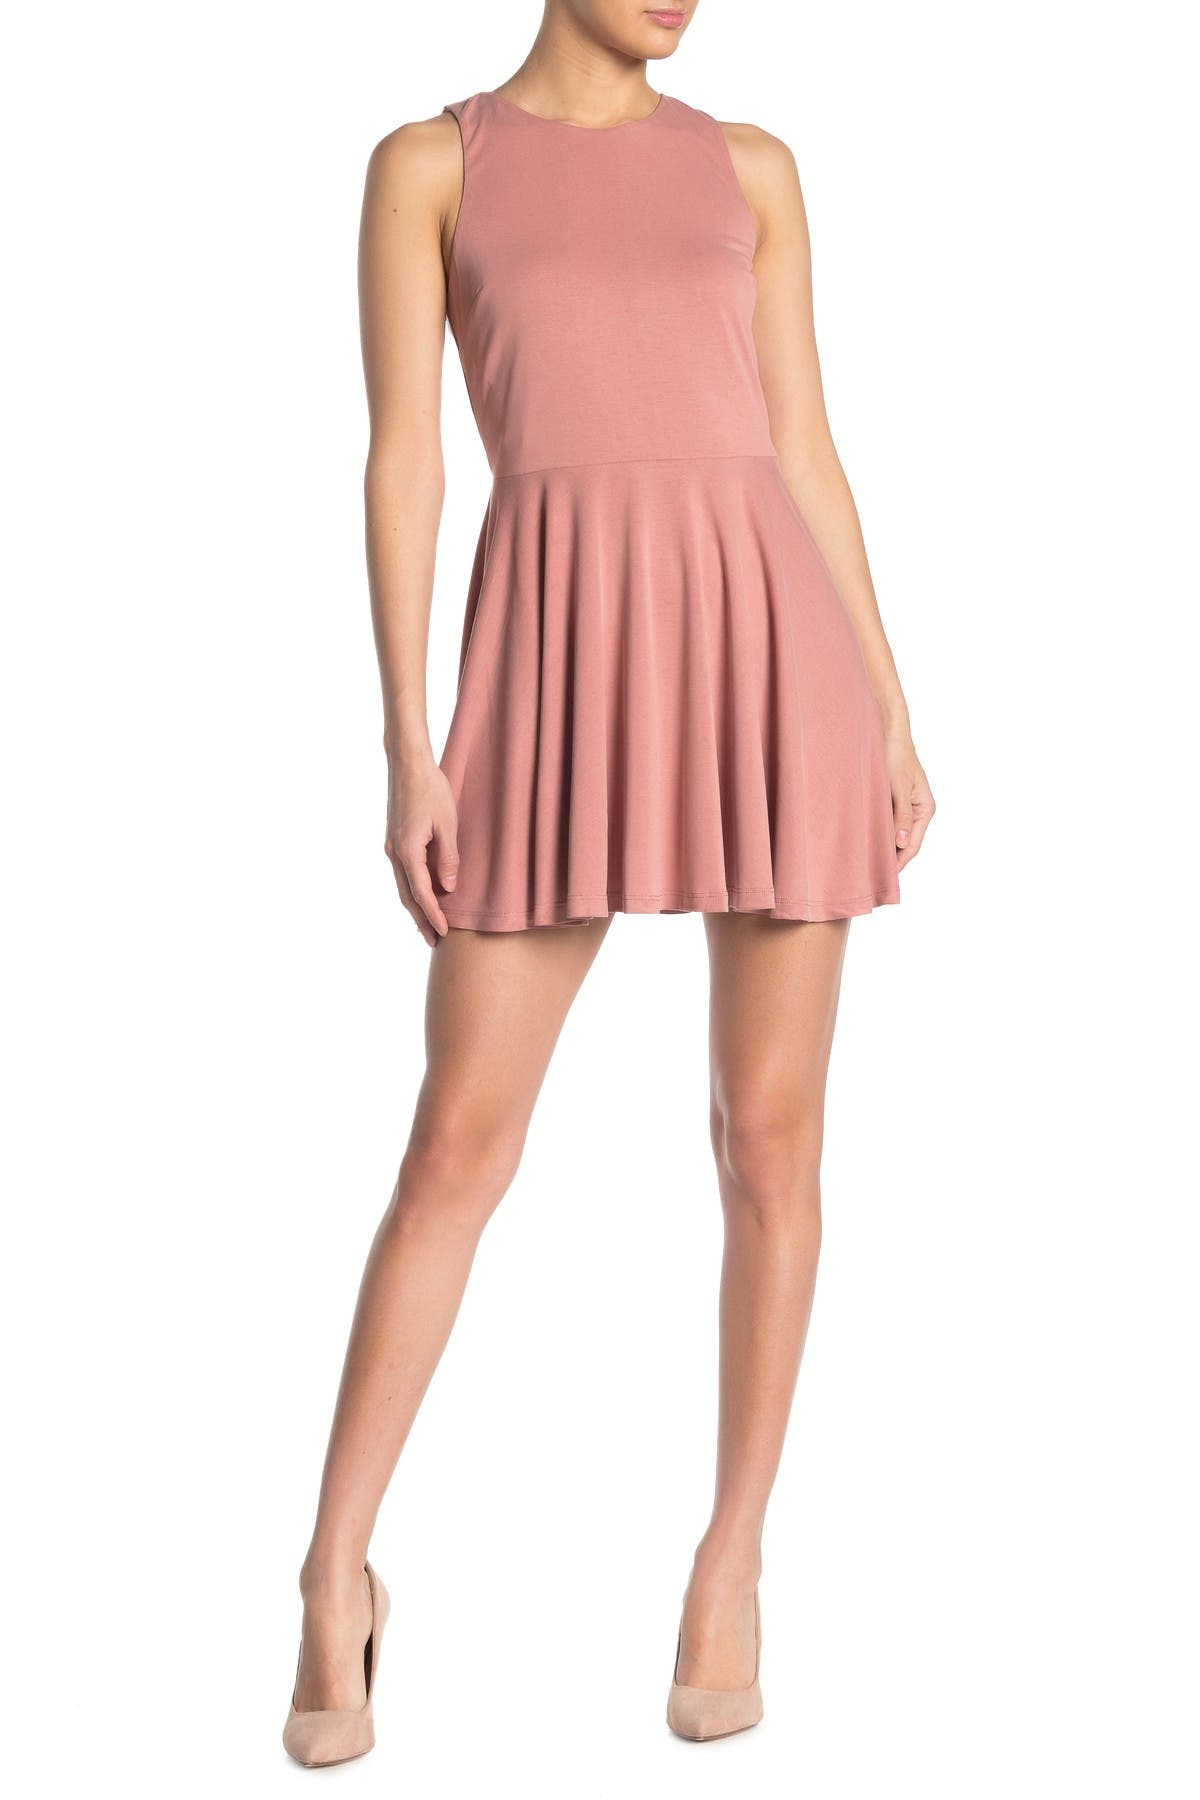 Image of Lovers + Friends Sweet Thing Fit & Flare Dress